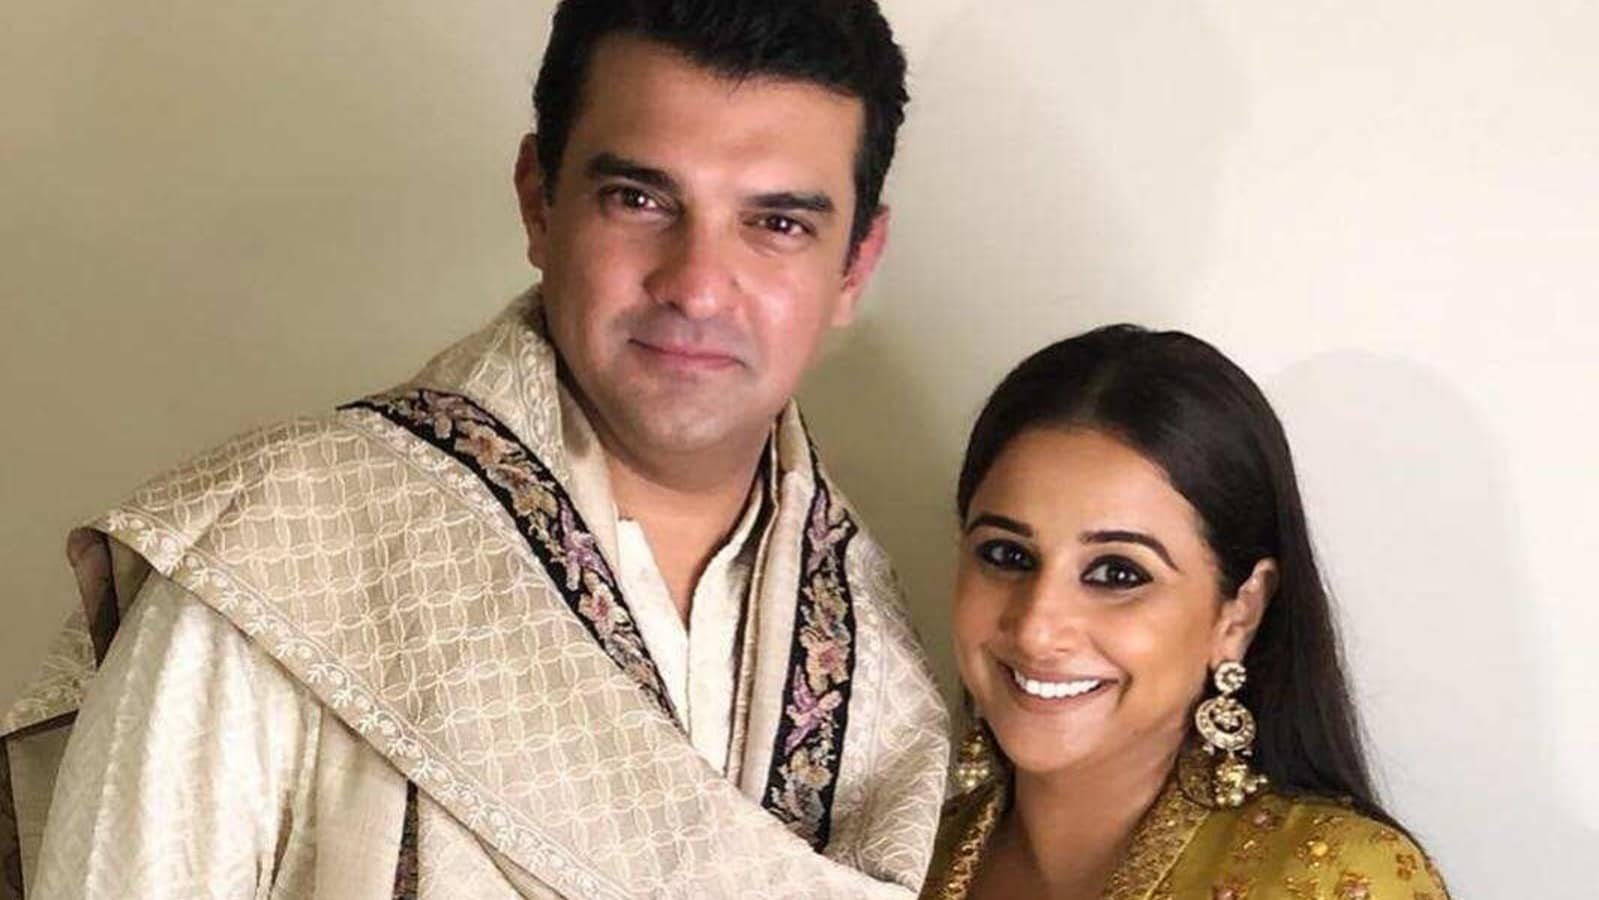 Vidya Balan reveals what it takes to keep the spark alive in a marriage - Hindustan Times